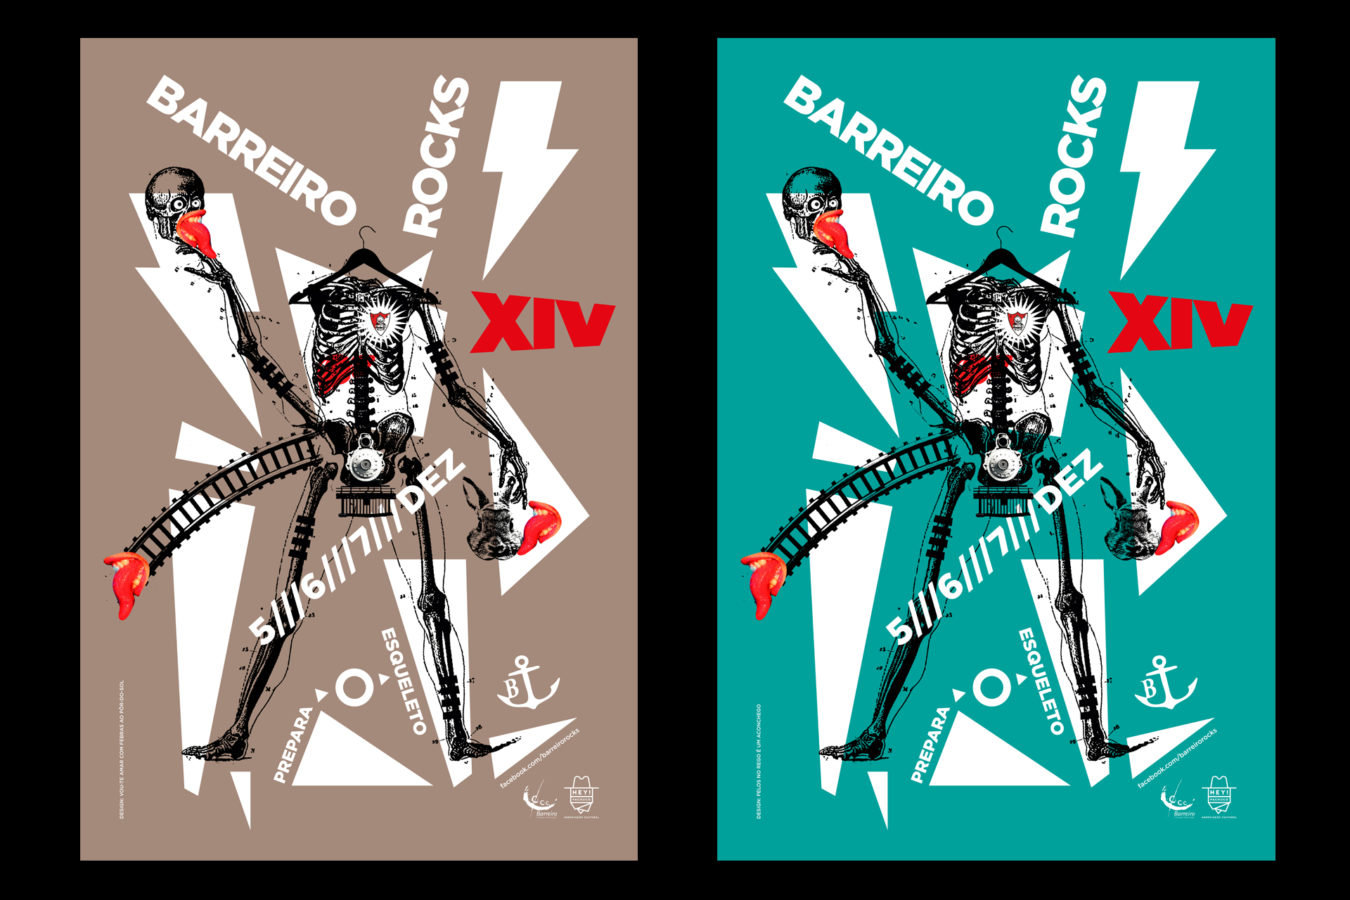 Teasers Posters<br>Barreiro Rocks 14